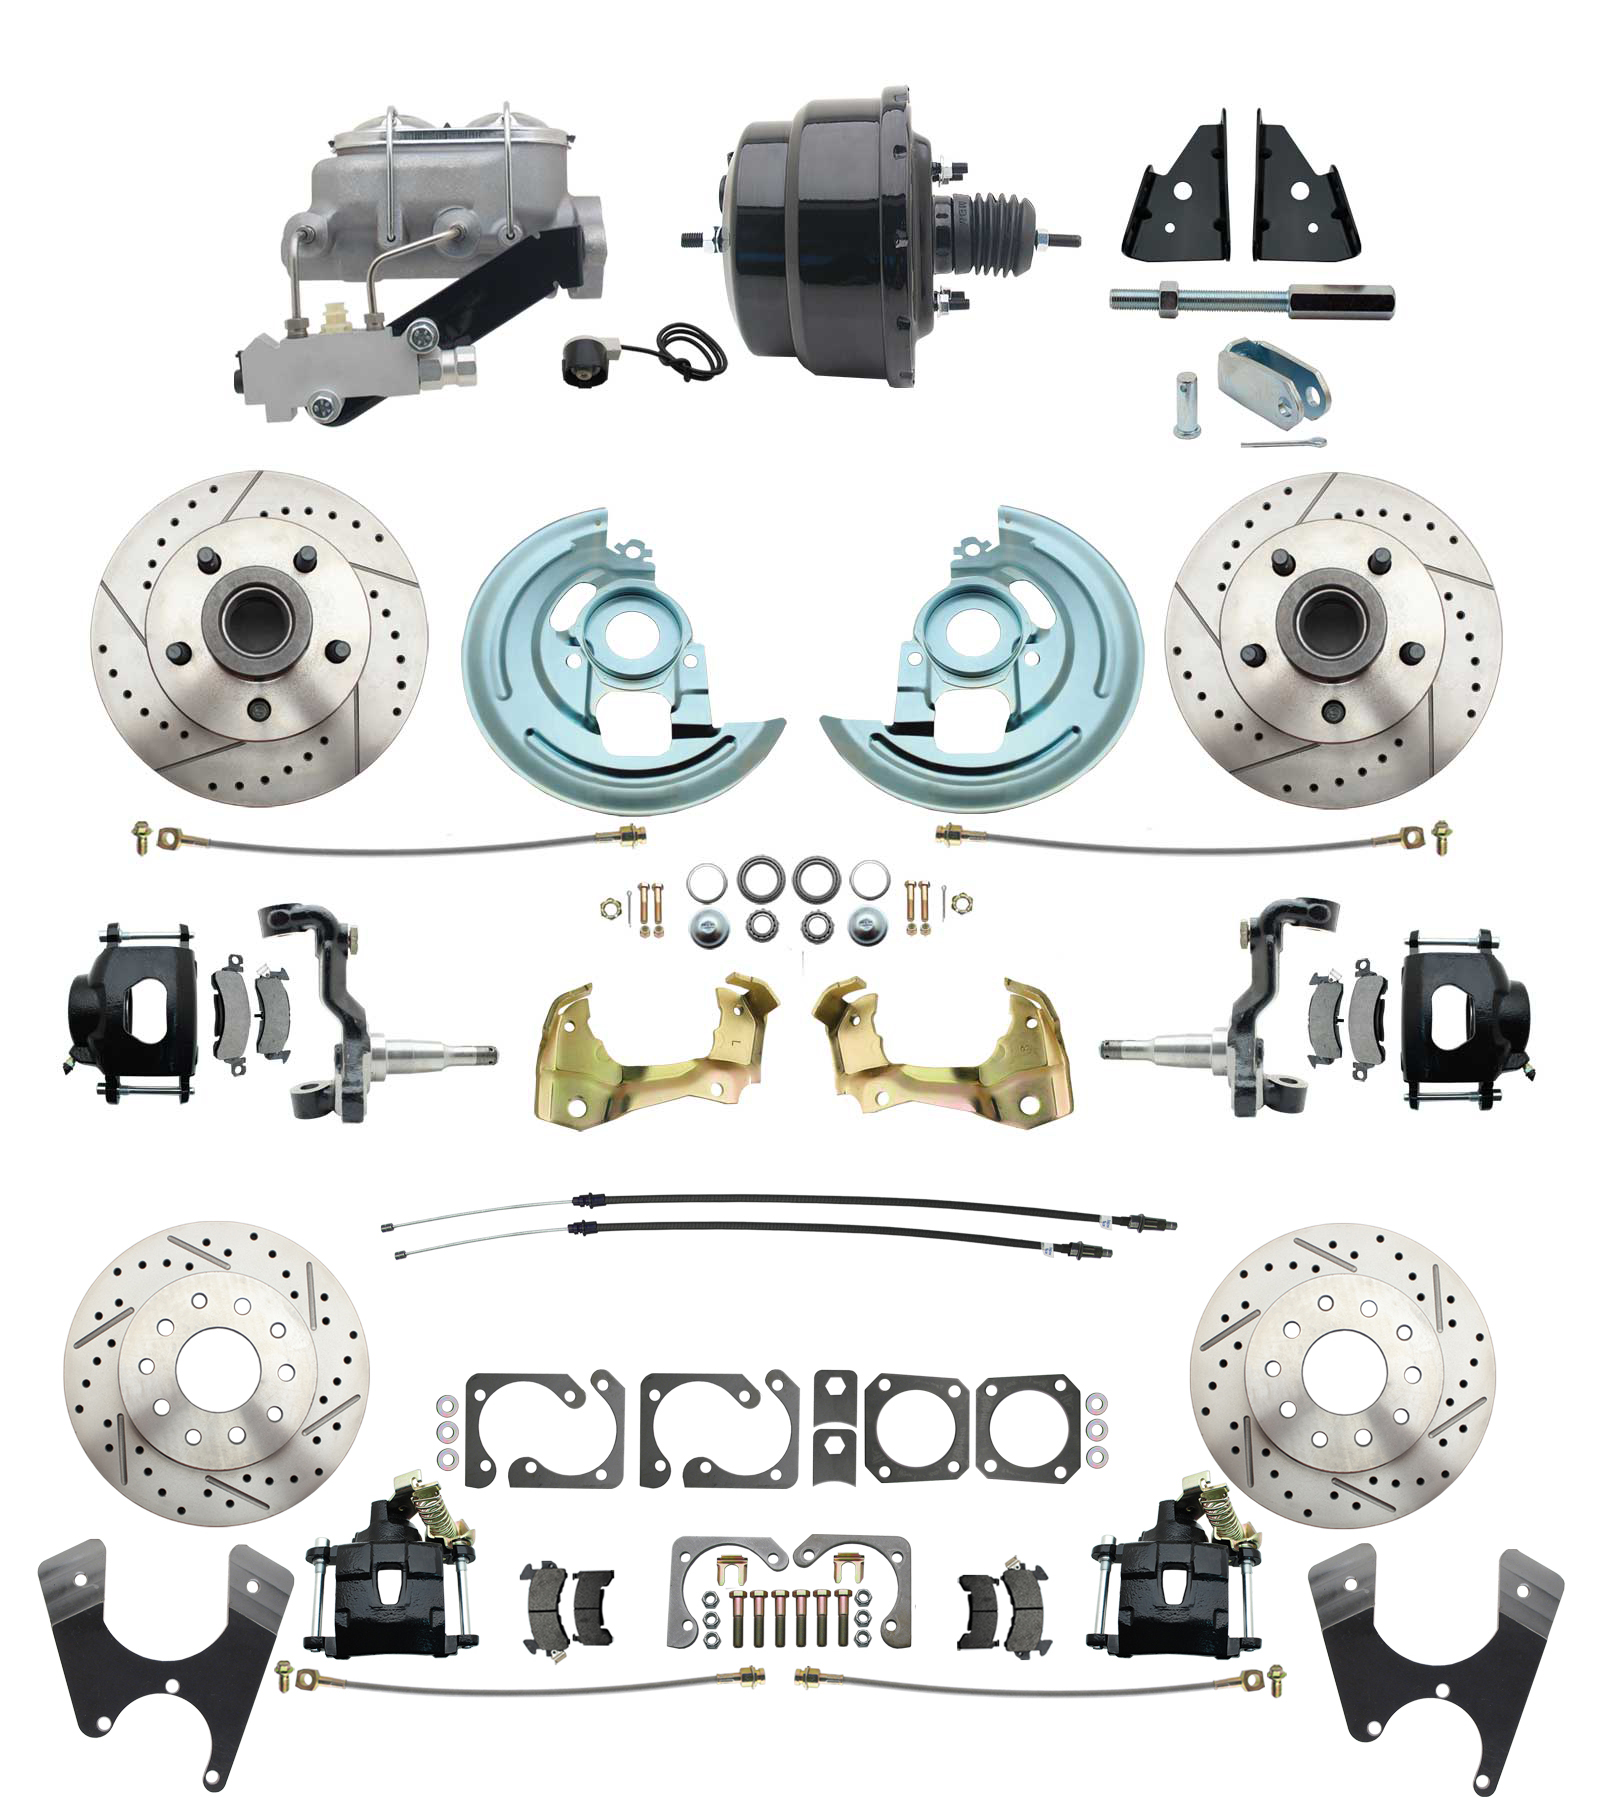 1967-1969 Camaro/ Firebird & 1968-1974 Chevy Nova Front & Rear Power Disc Brake Conversion Kit Drilled & Slotted & Powder Coated Black Calipers Rotors W/ 8 Dual Powder Coated Black Booster Kit